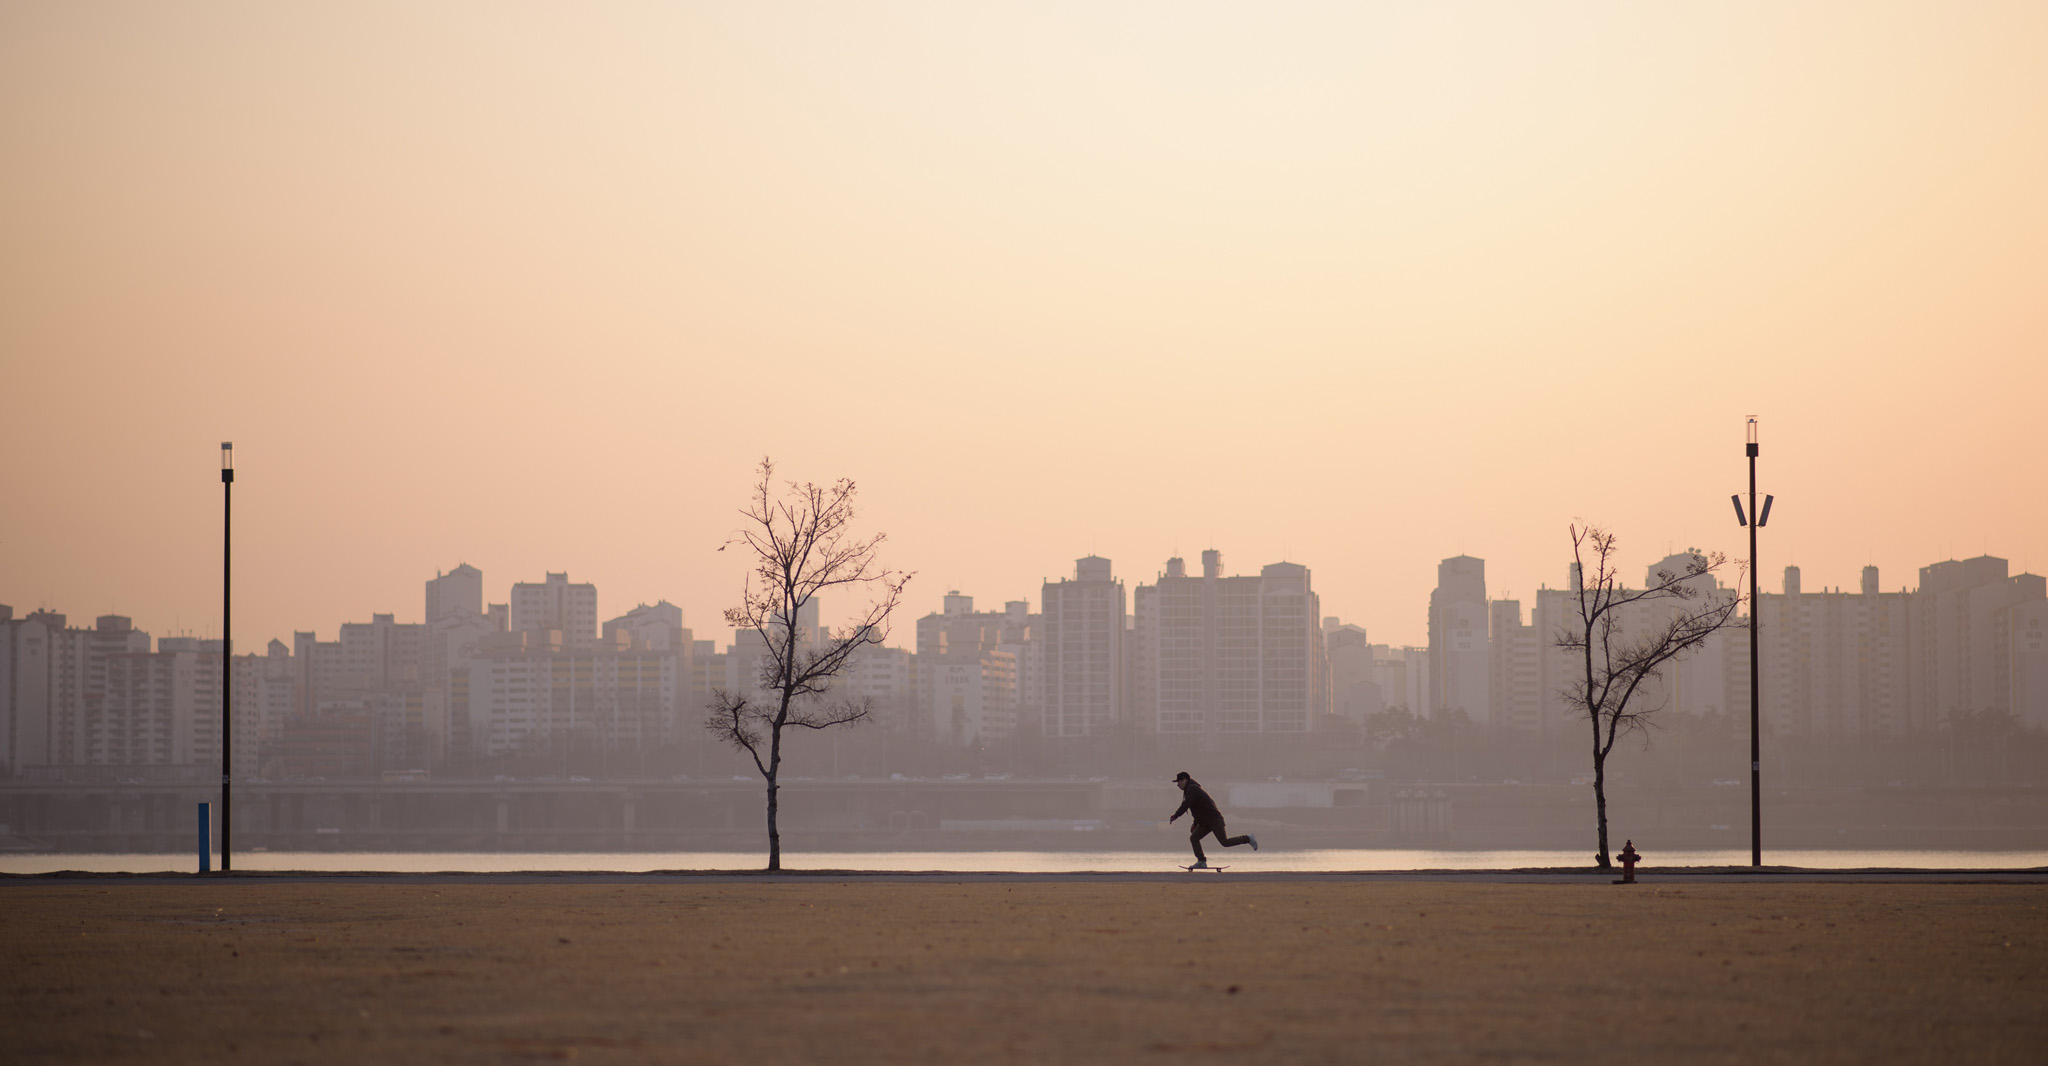 n a photo taken on January 15,...TOPSHOTS In a photo taken on January 15, 2015 a skateboarder passes alongside the Han river at dusk in Seoul. South Korea's central bank slashed its 2015 economic growth forecast and kept its benchmark interest rate unchanged at a record low amid growing concerns of deflation. AFP PHOTO / Ed JonesED JONES/AFP/Getty Images